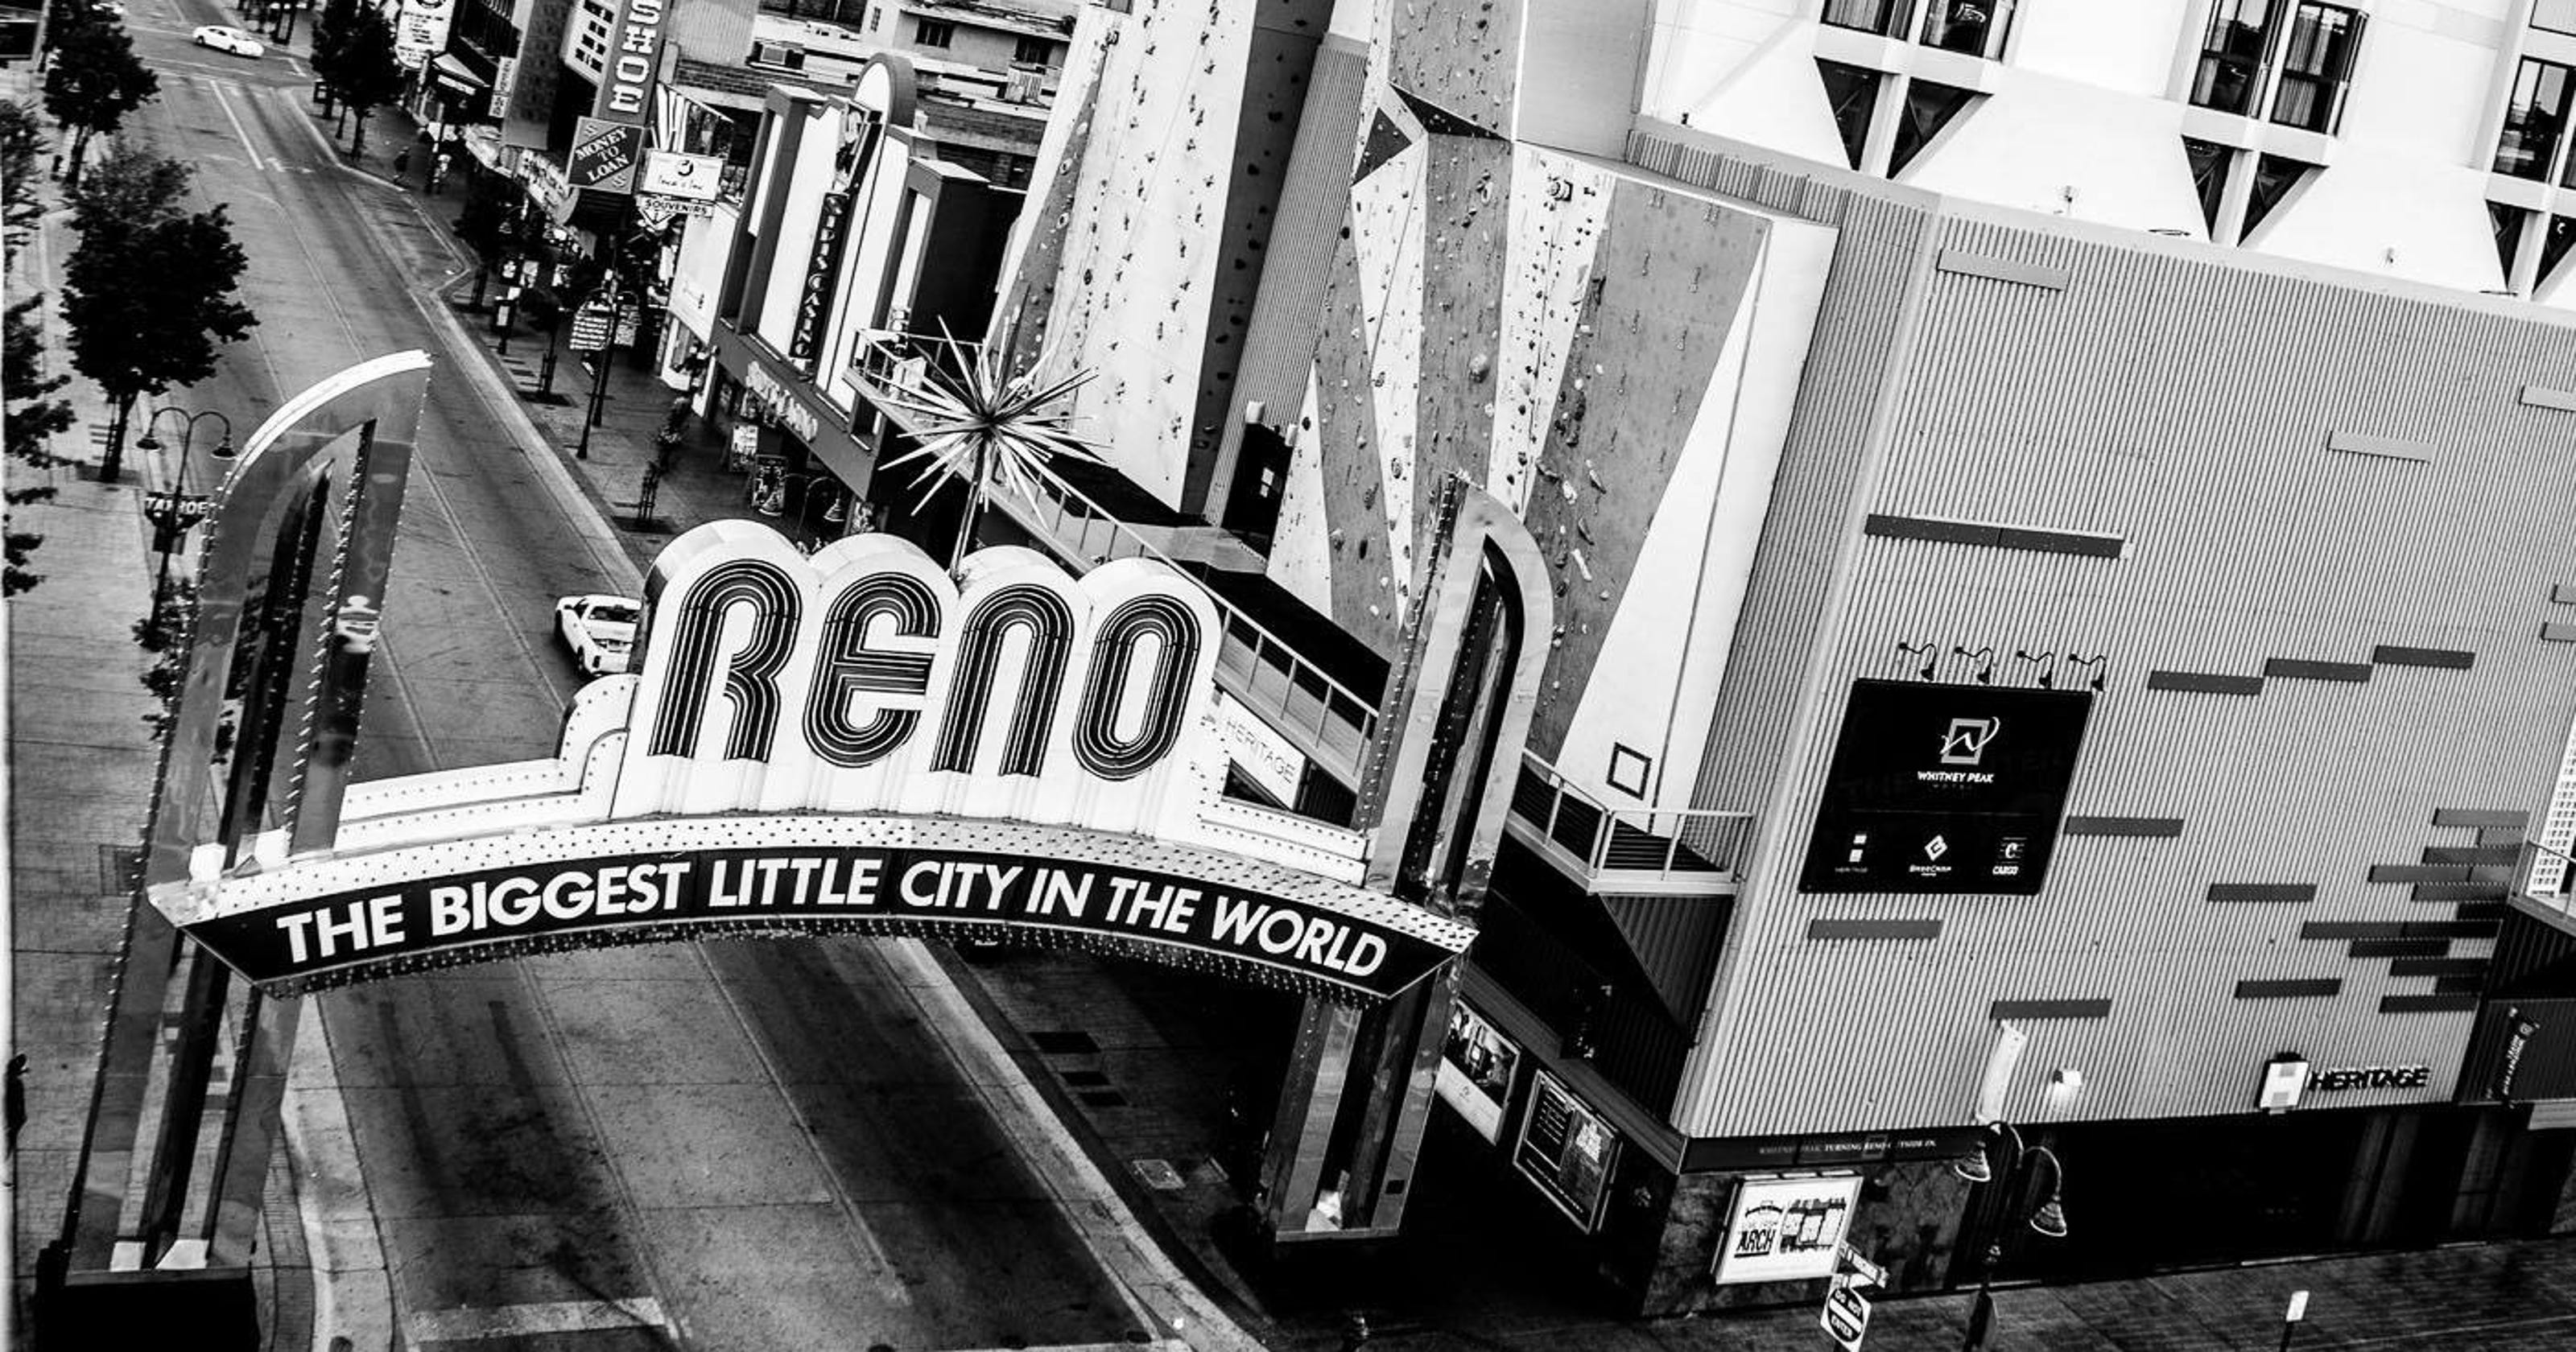 City Of Reno Jobs >> So You Want To Move To Reno 8 Things You Need To Know First